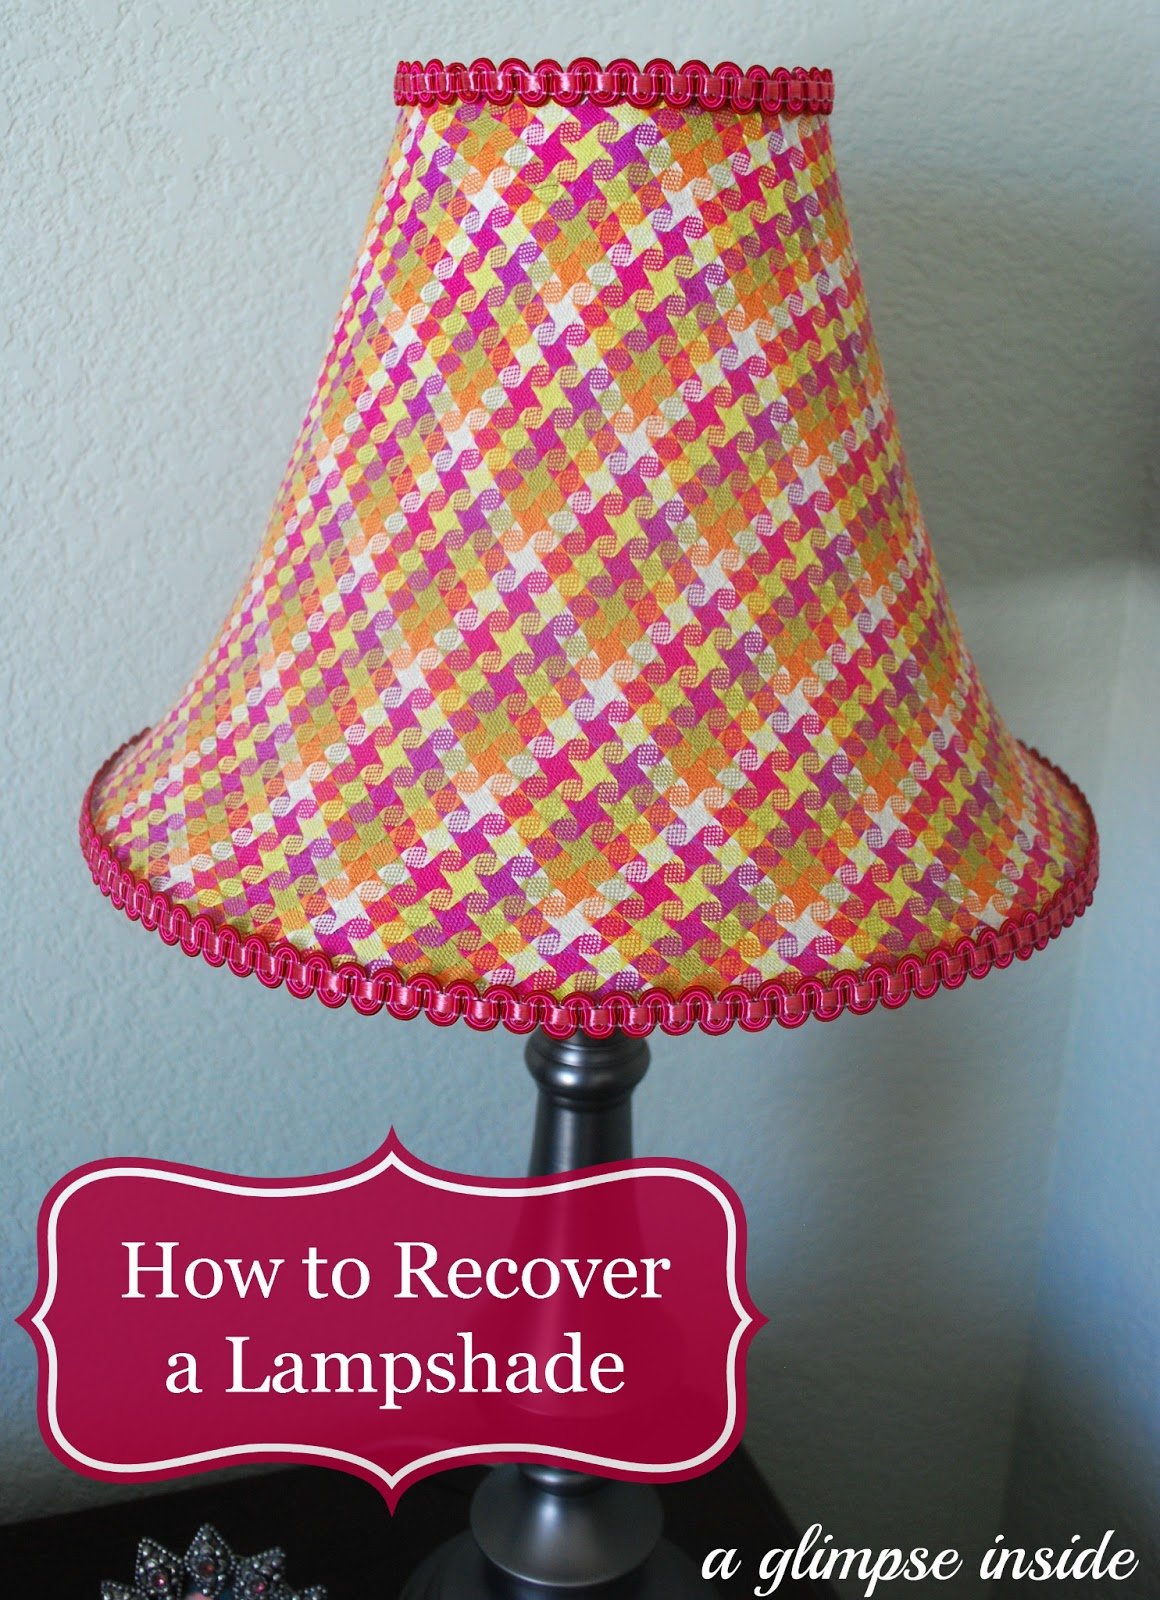 How To Recover A Lampshade A Glimpse Inside